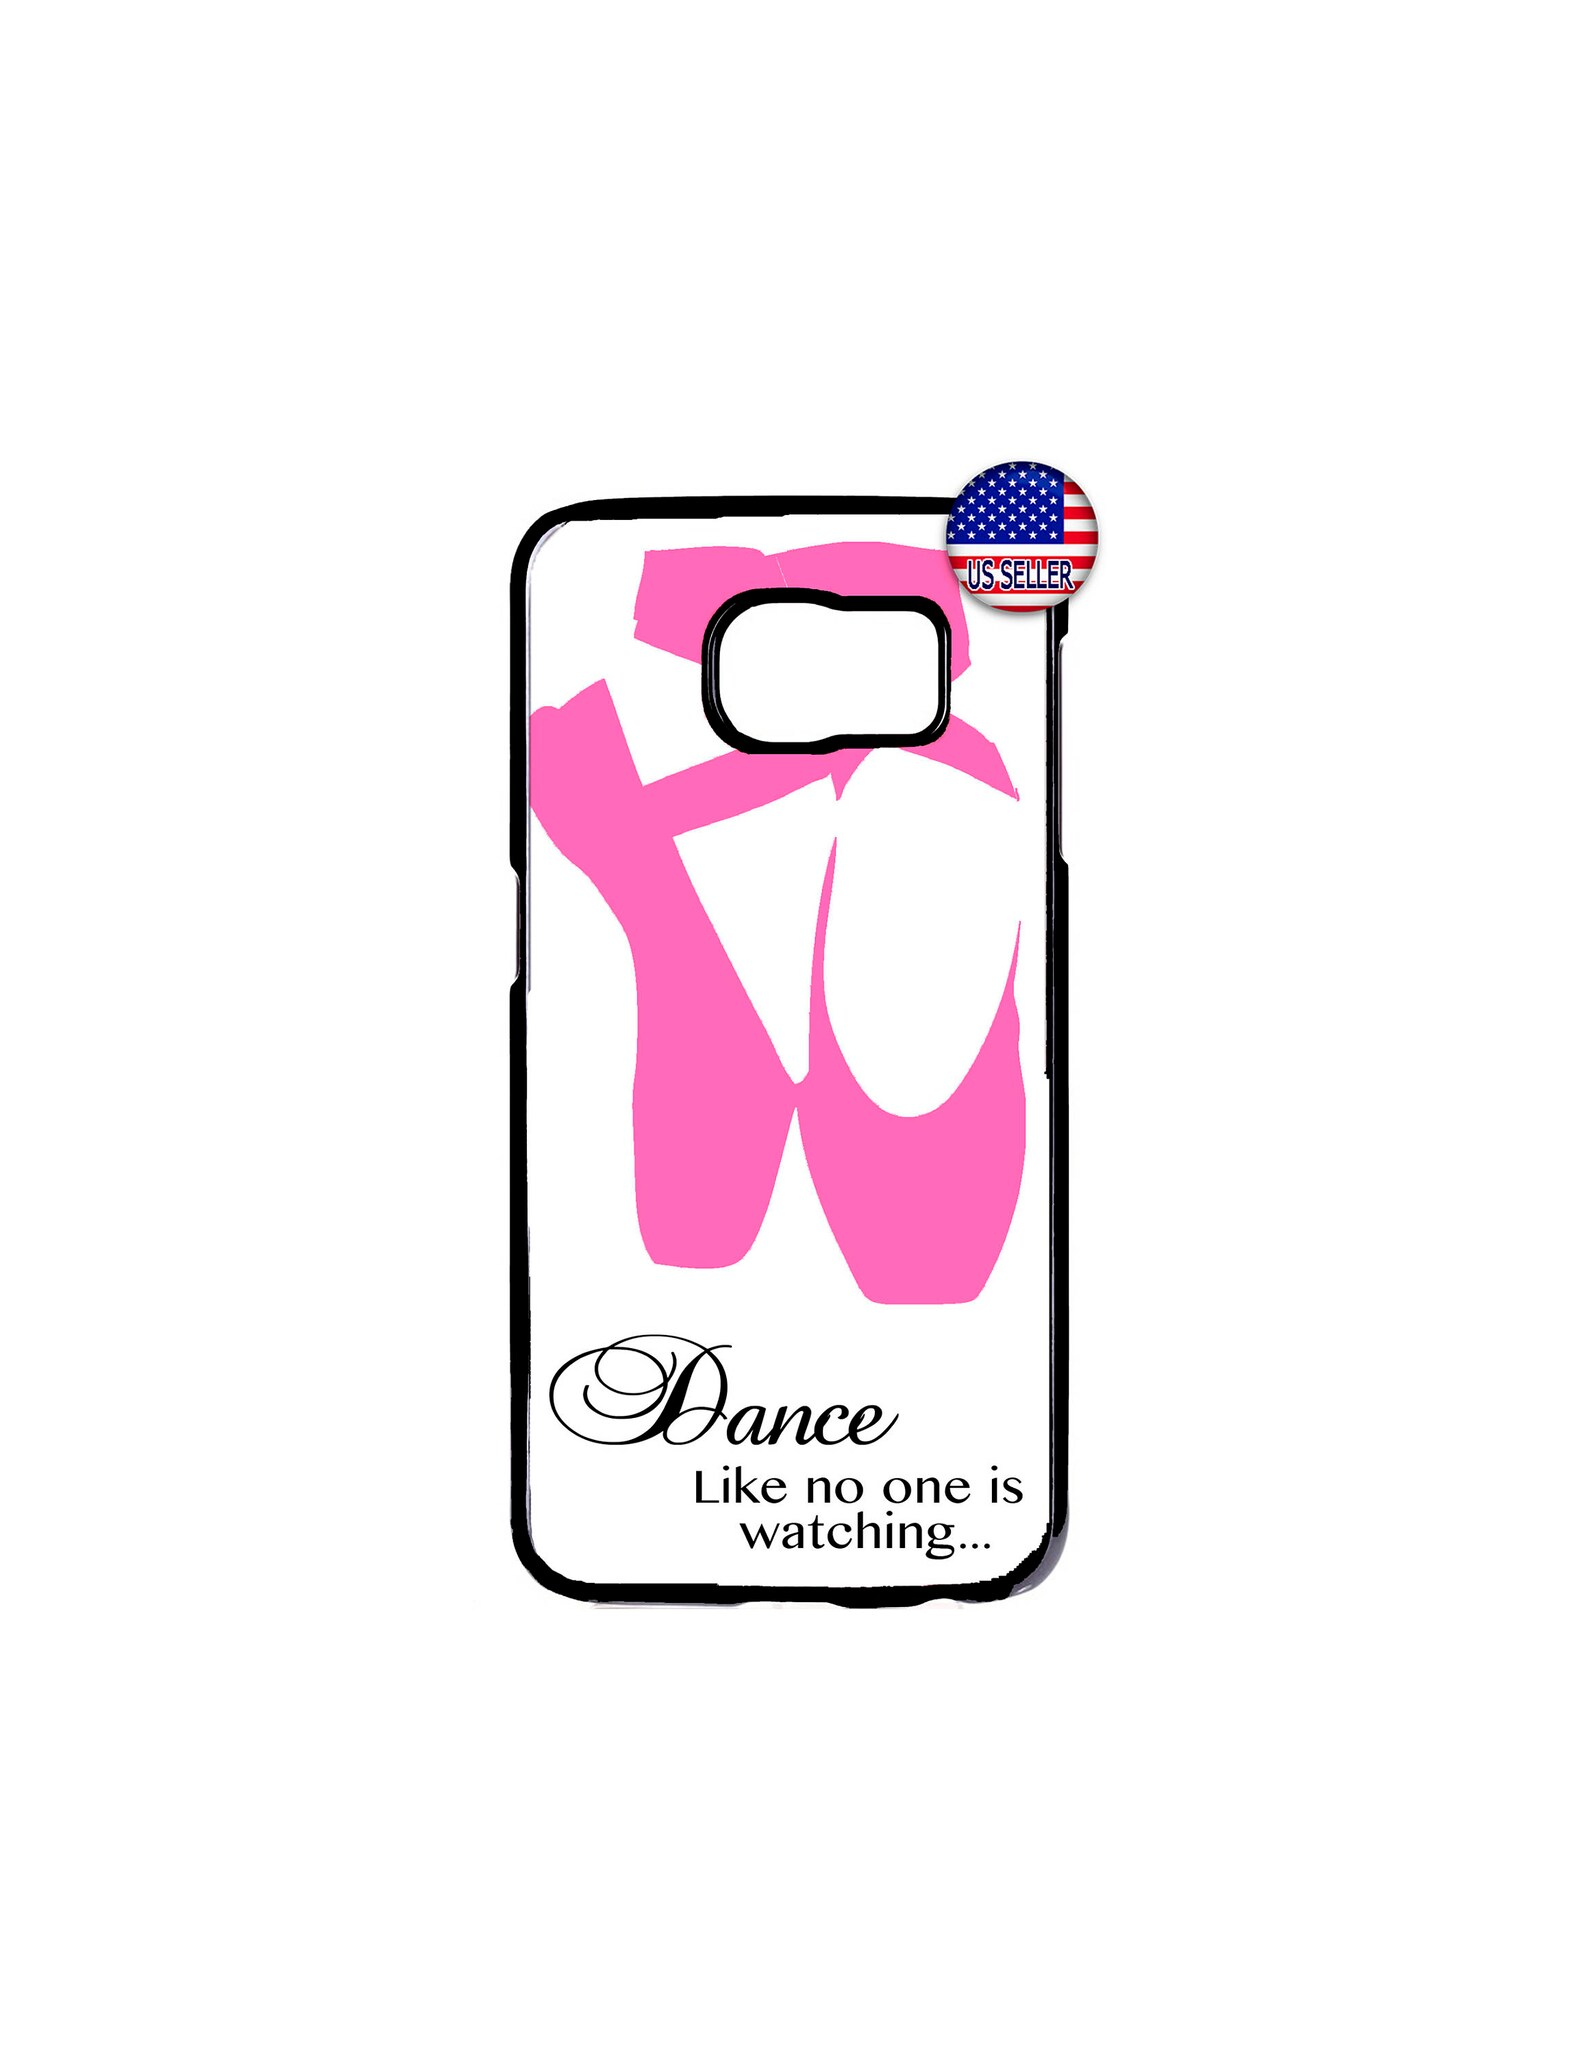 ballerina ballet dancer shoes hard rubber slim case cover for samsung galaxy s9 s8 s7 s6 edge plus s5 s4 s3 note 8 5 4 ipod touc